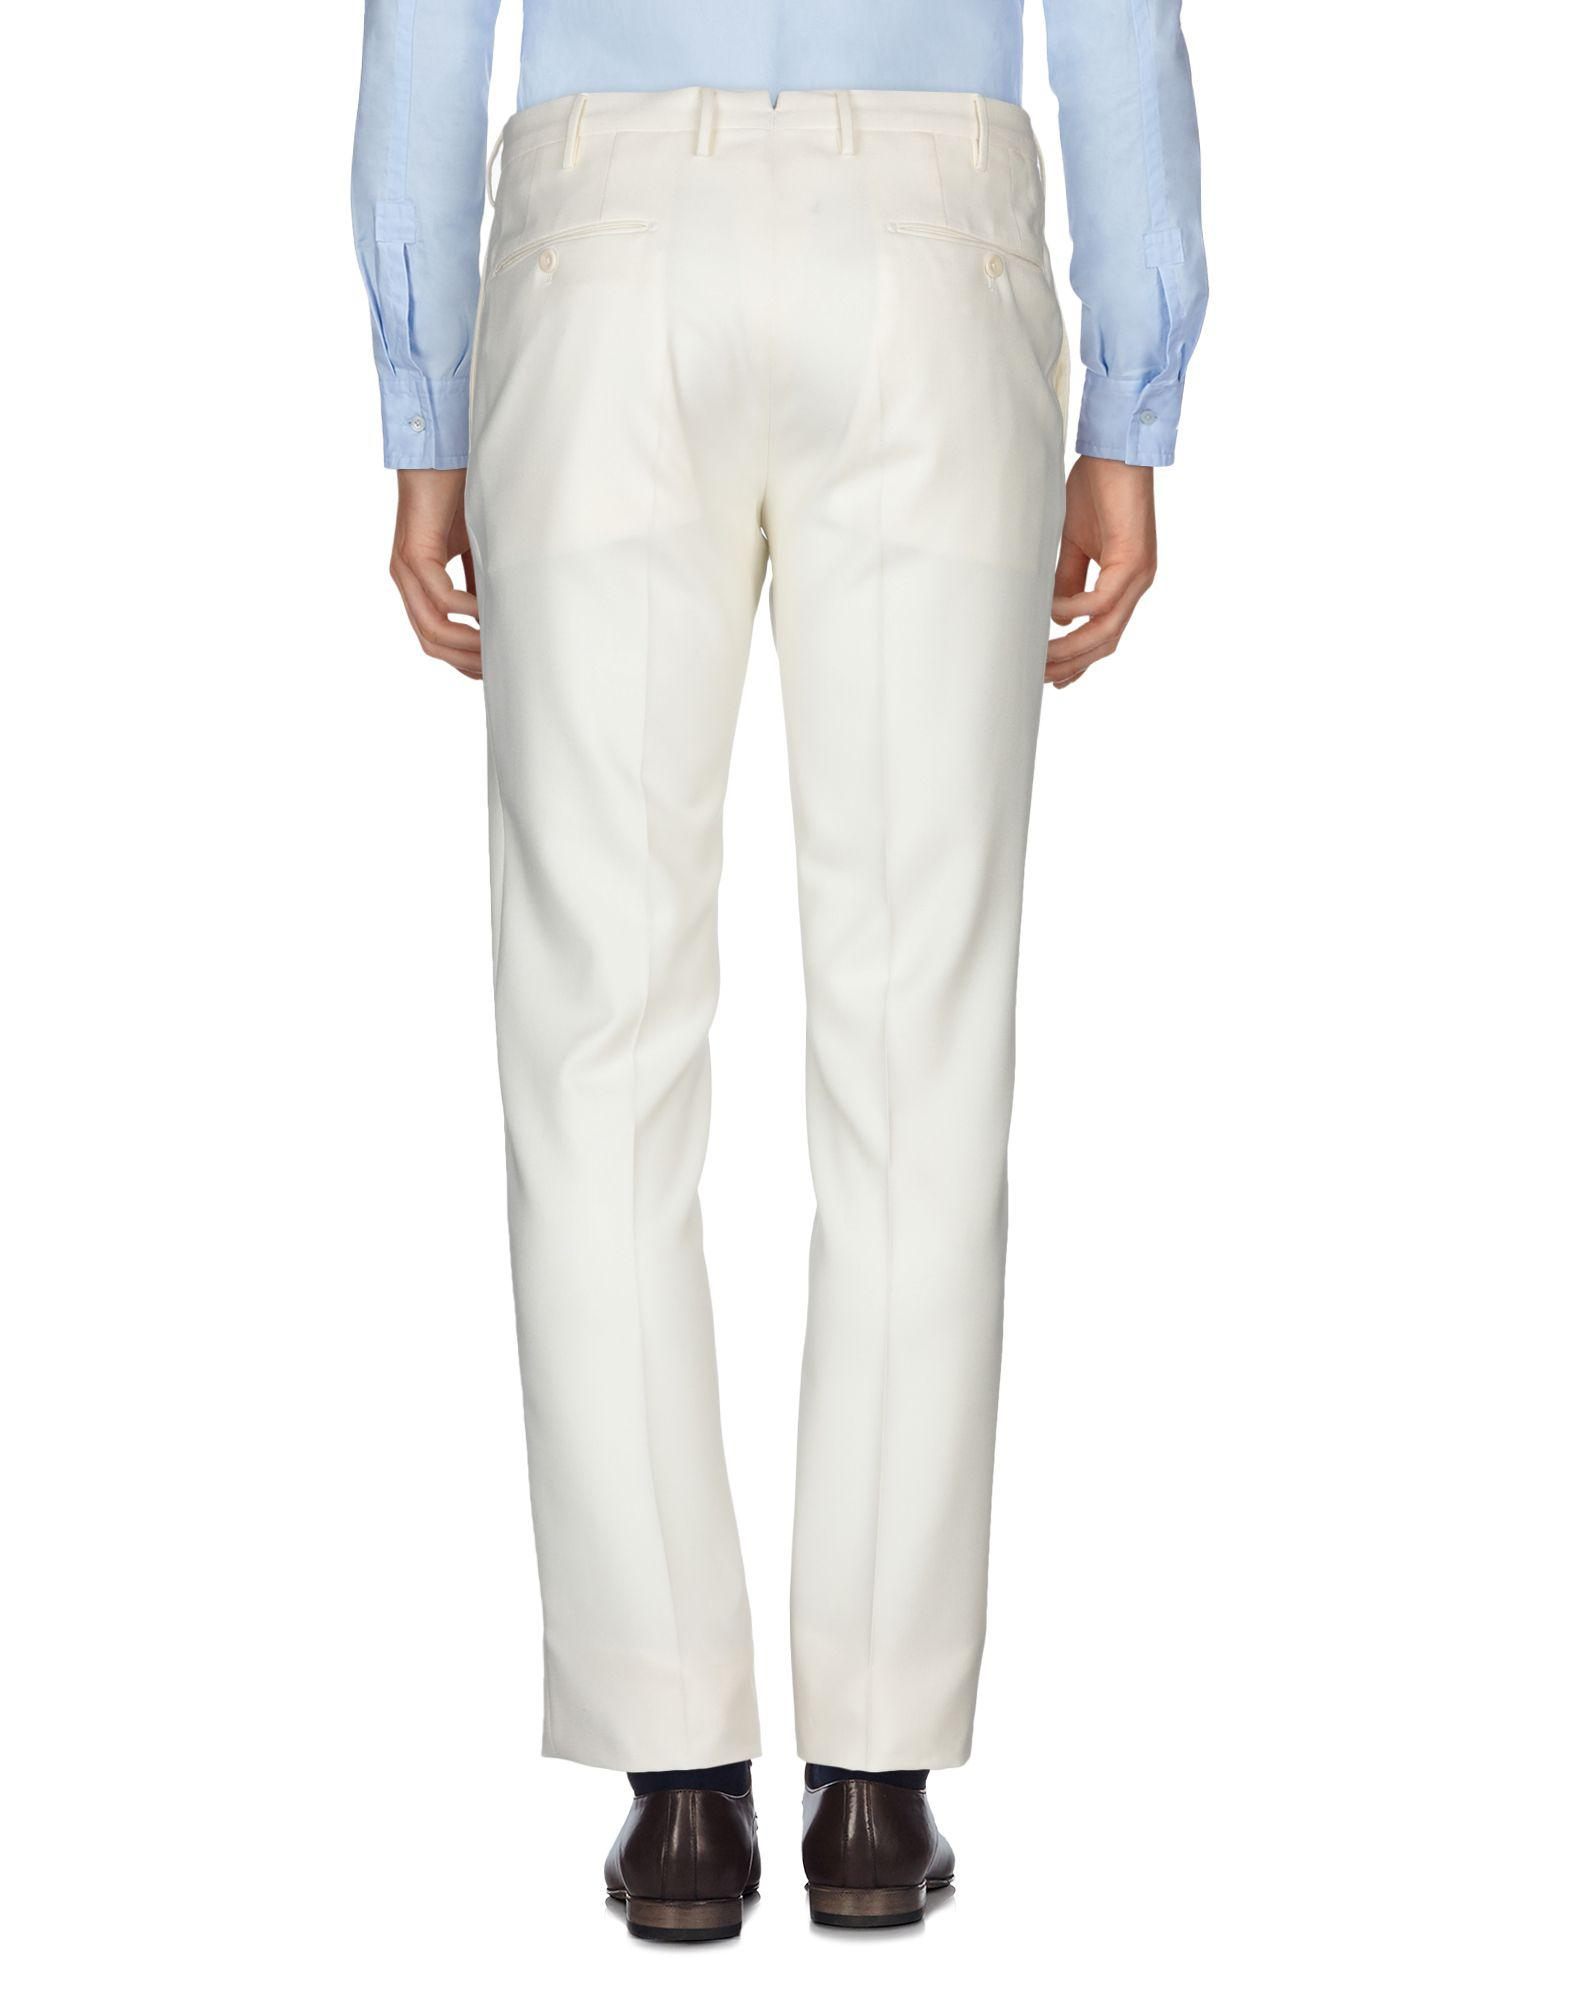 Incotex Wool Casual Trouser in Ivory (White) for Men